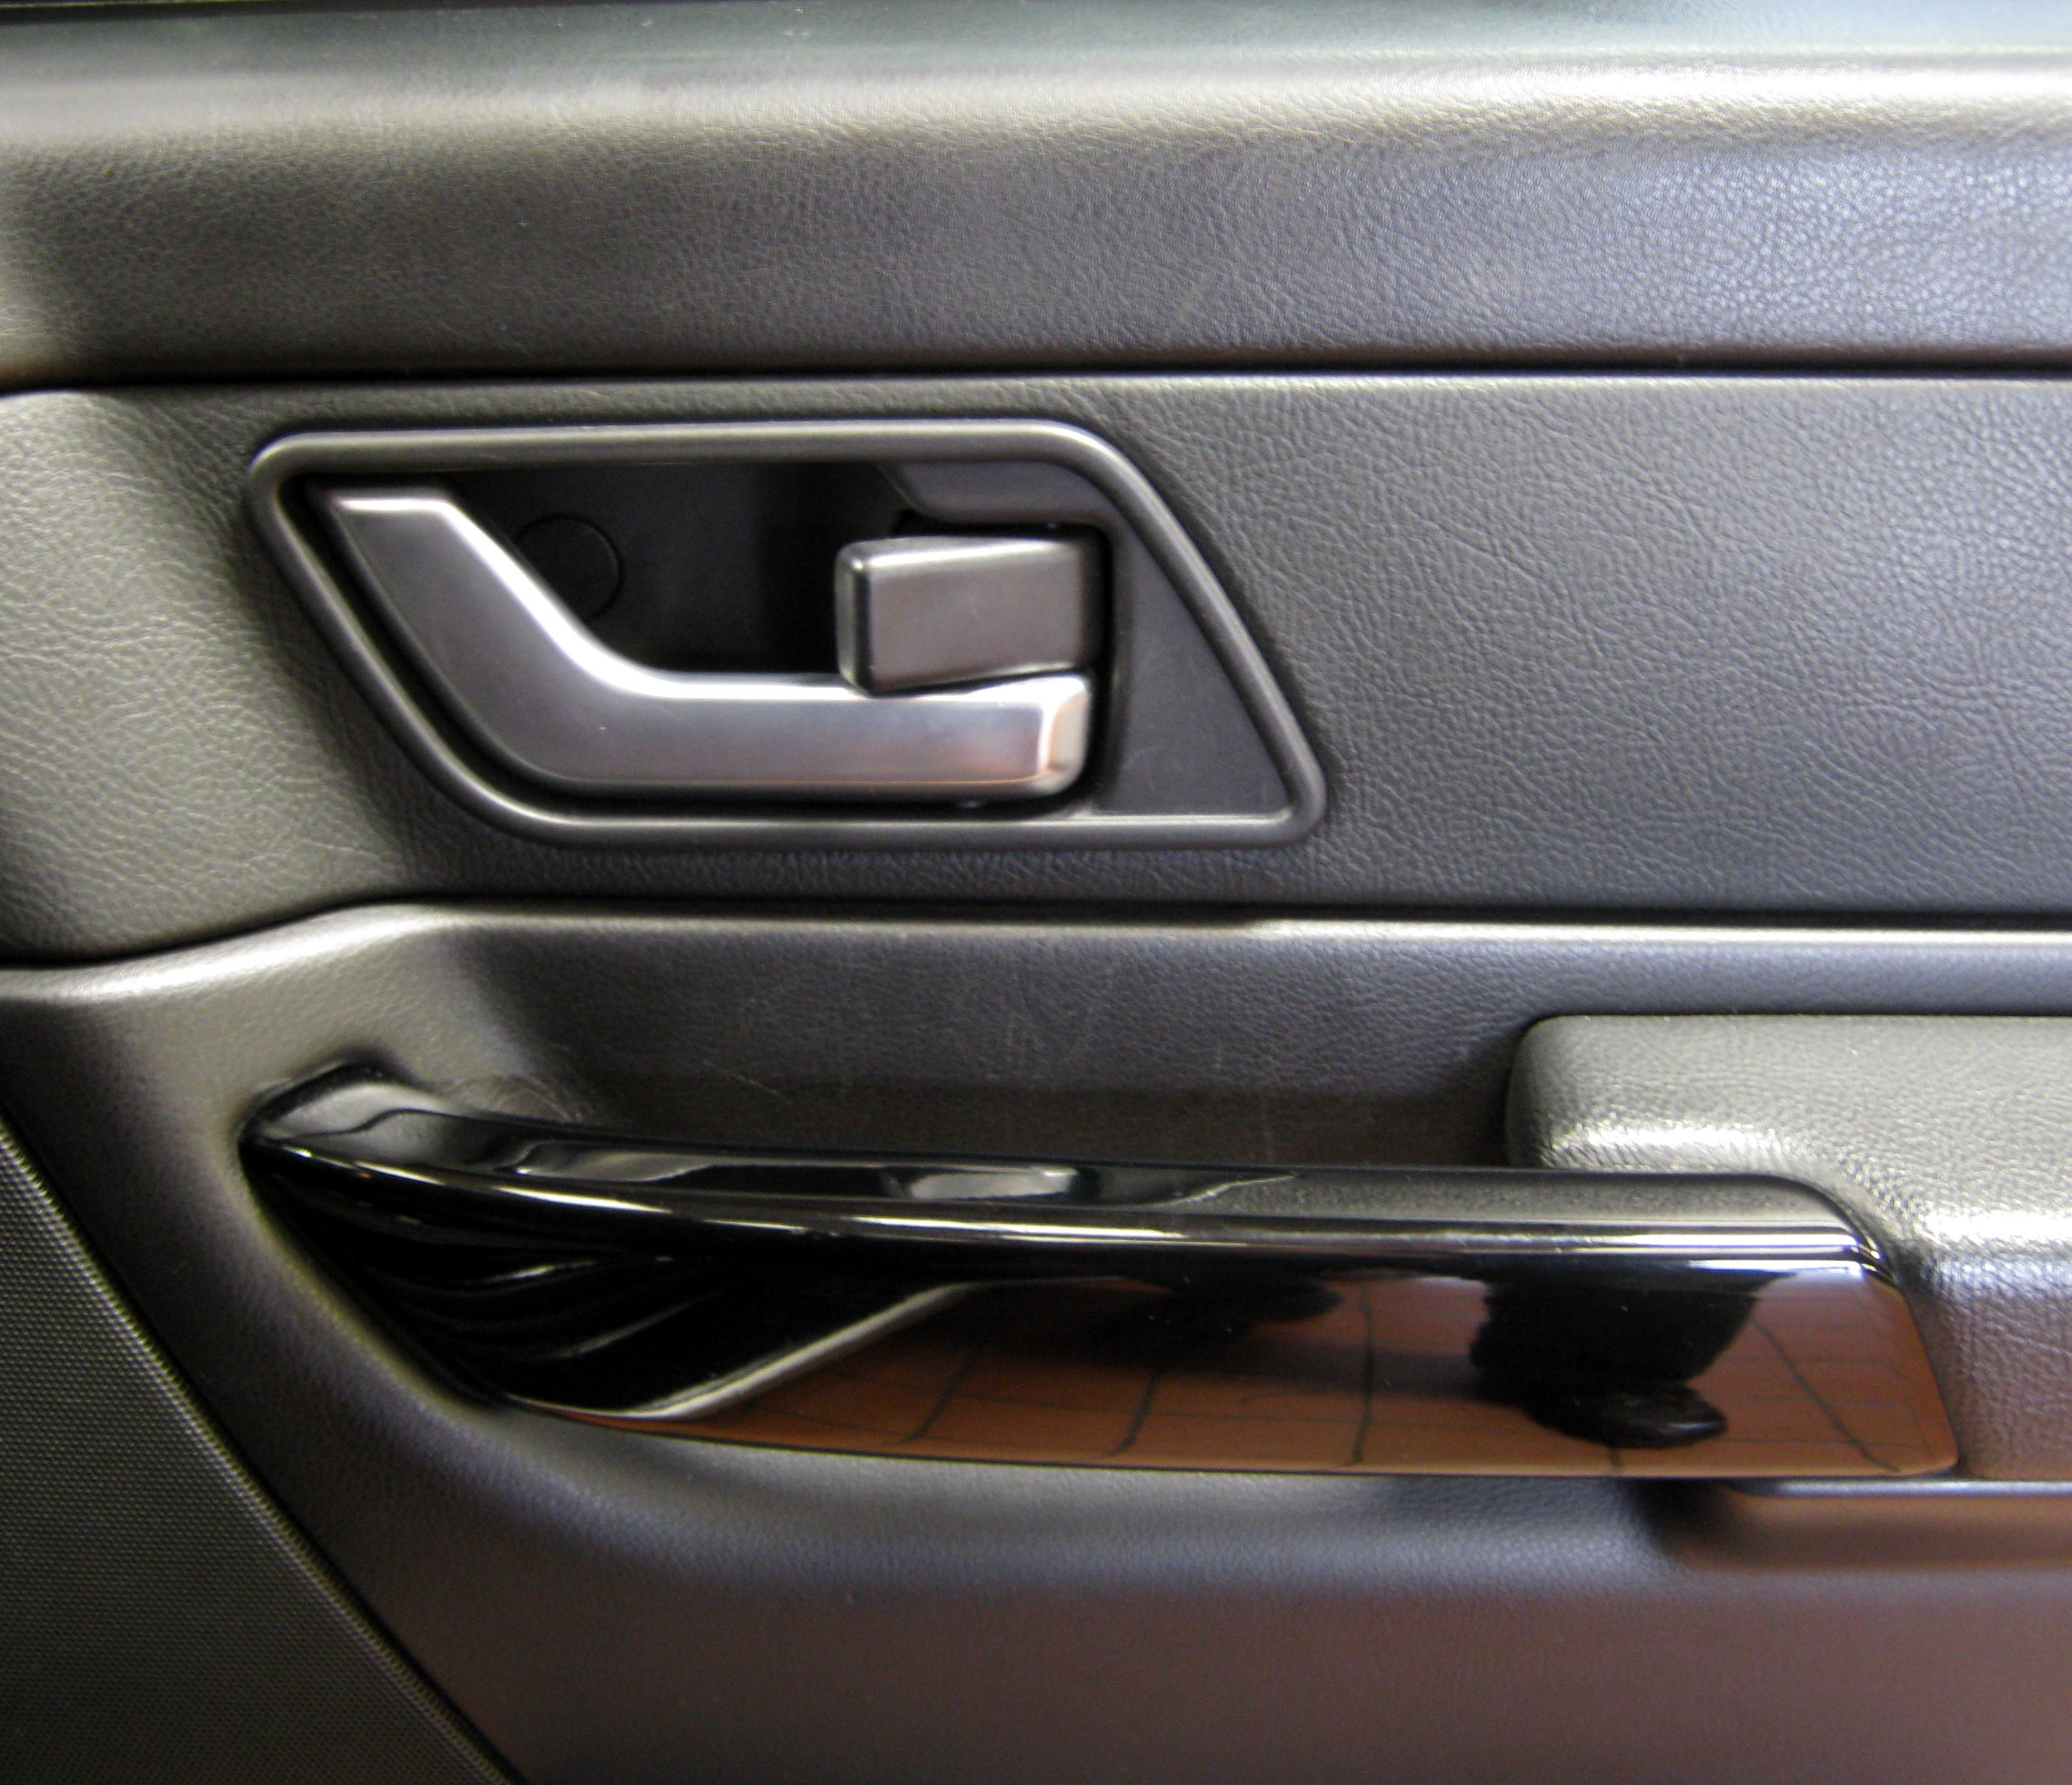 Find More 2009 Range Rover Sport Hse Automatic For Sale At: Black Piano Interior DOOR HANDLE PULL KIT Range Rover